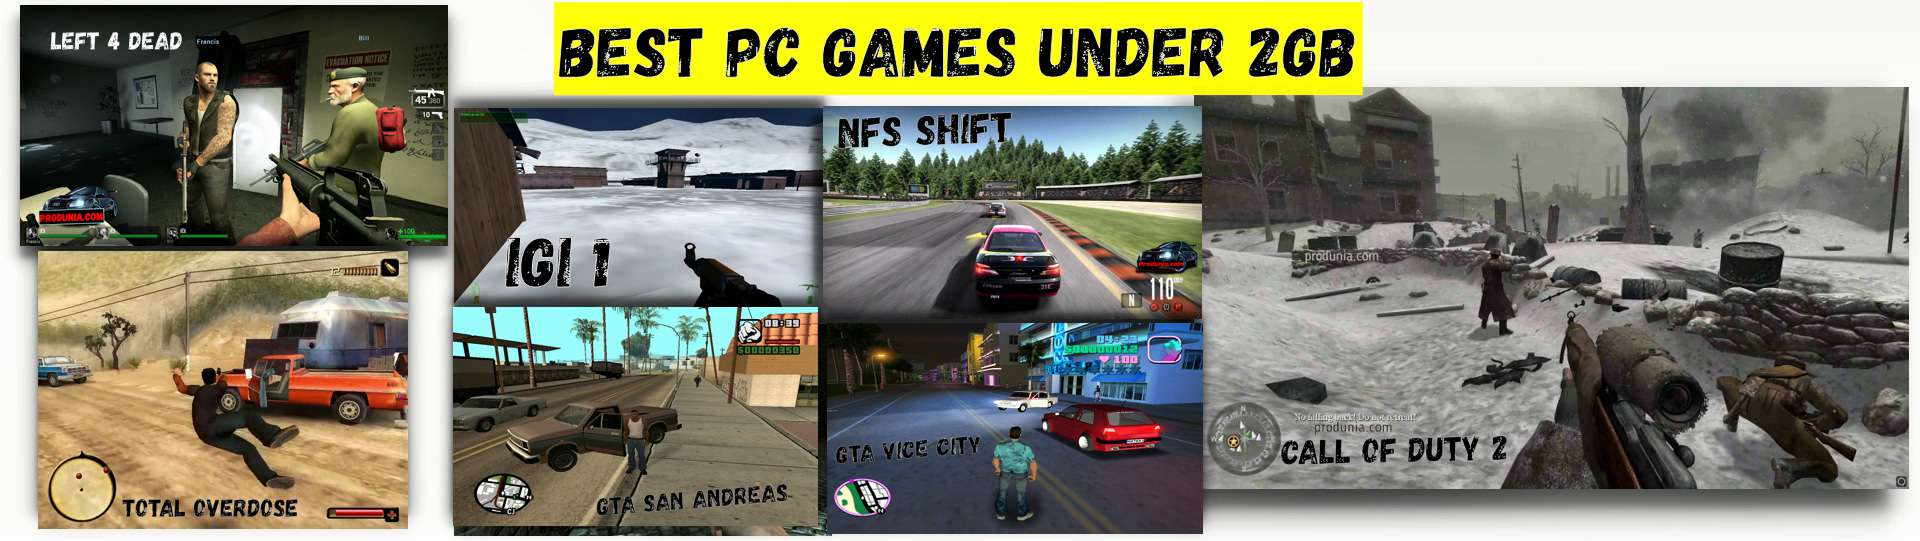 Best pc games under 2gb - Full collection with the download link